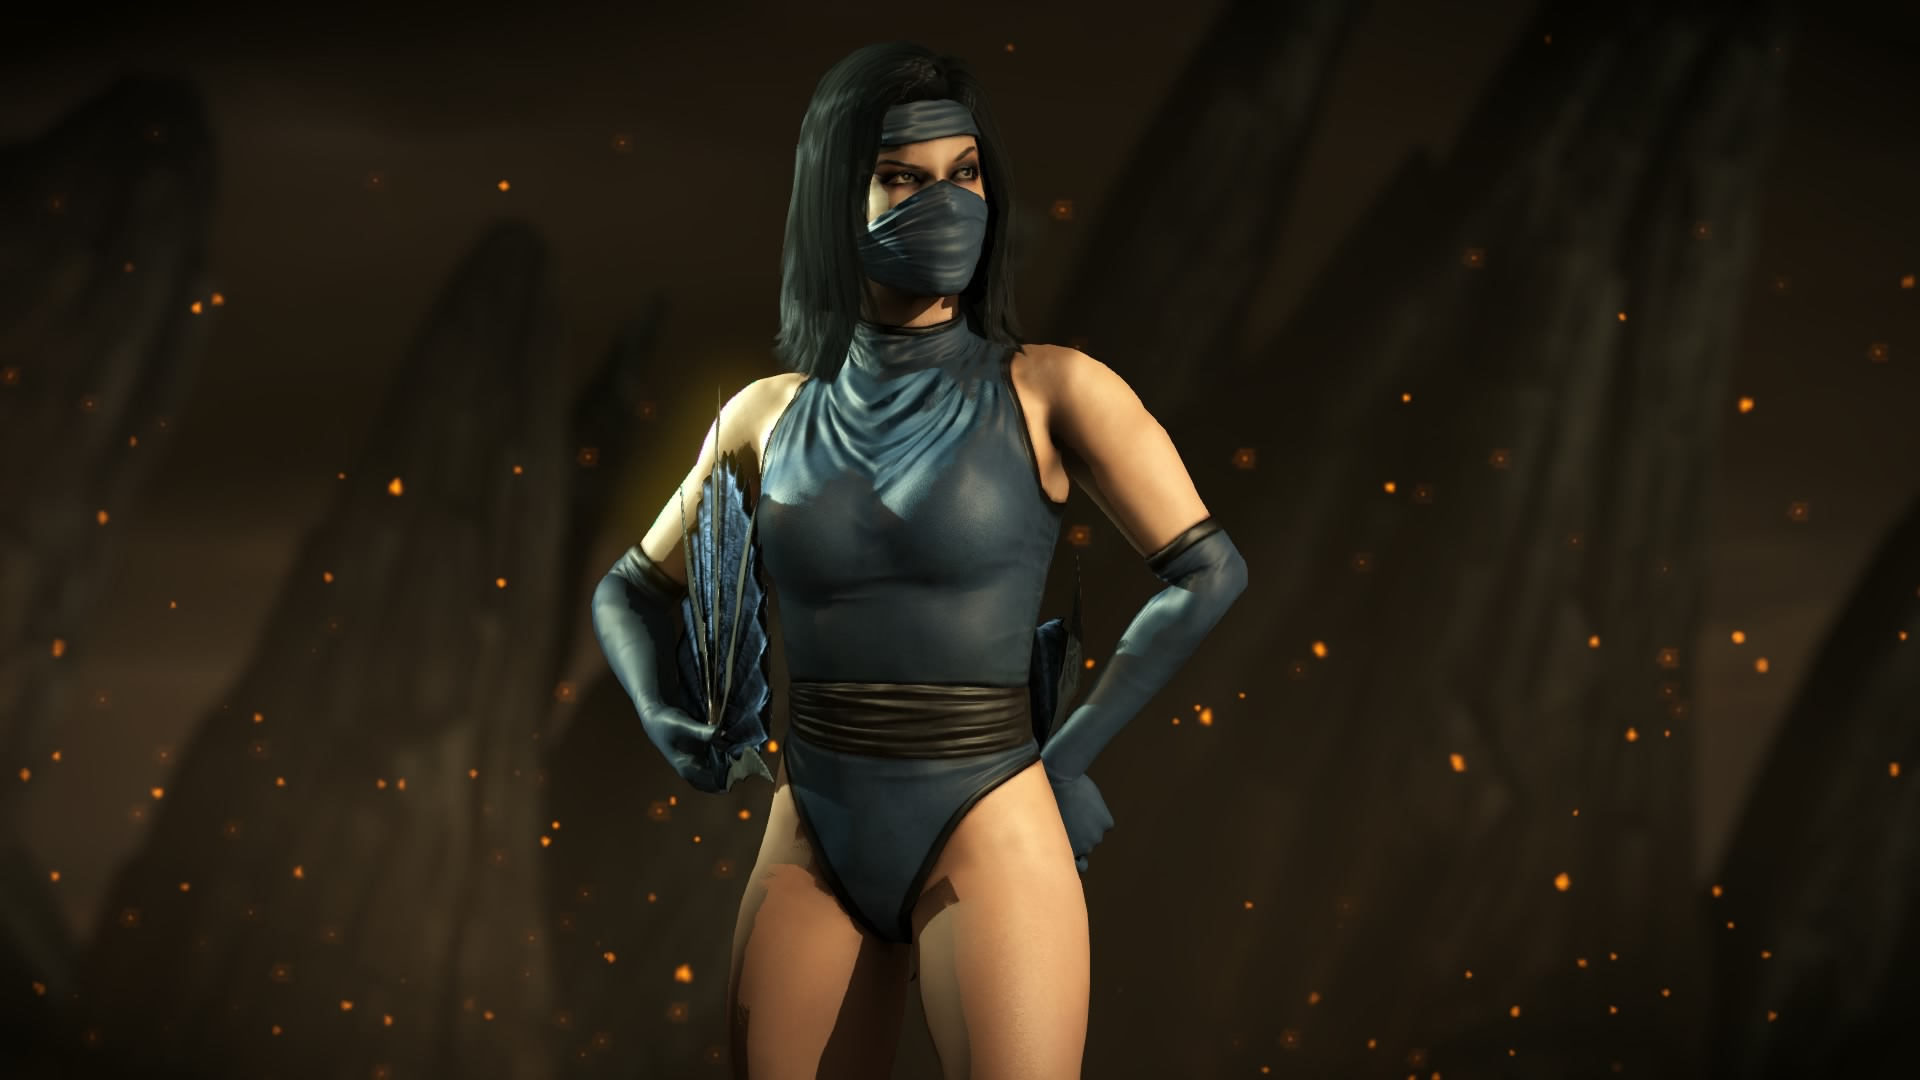 female mortal kombat xl characters